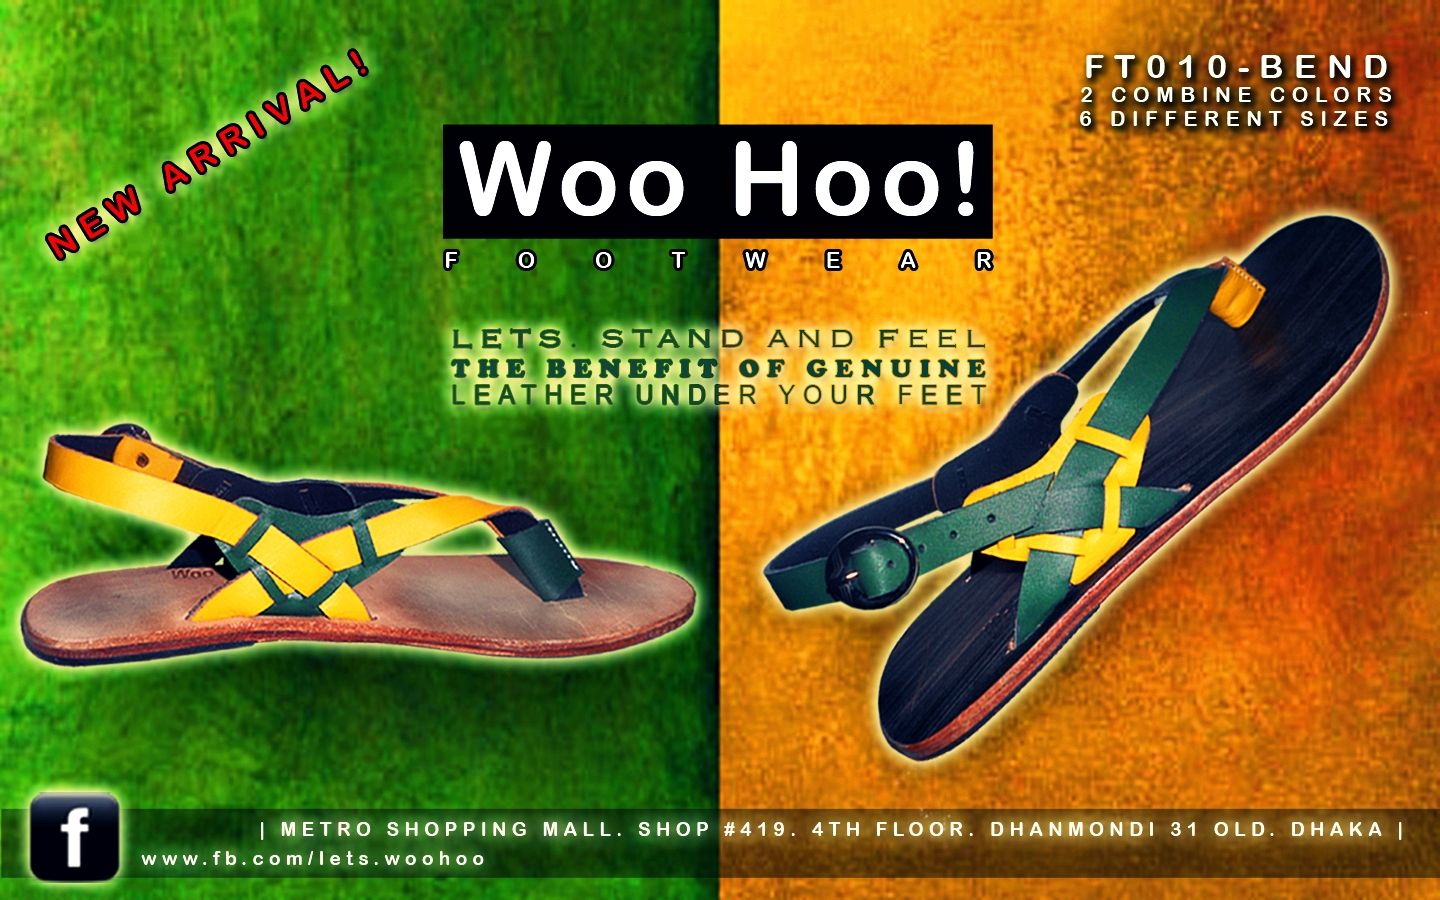 4db129dda39a NEW ARRIVAL! (Available in Store) Woo Hoo! Footwear - FT010 BEND Colors